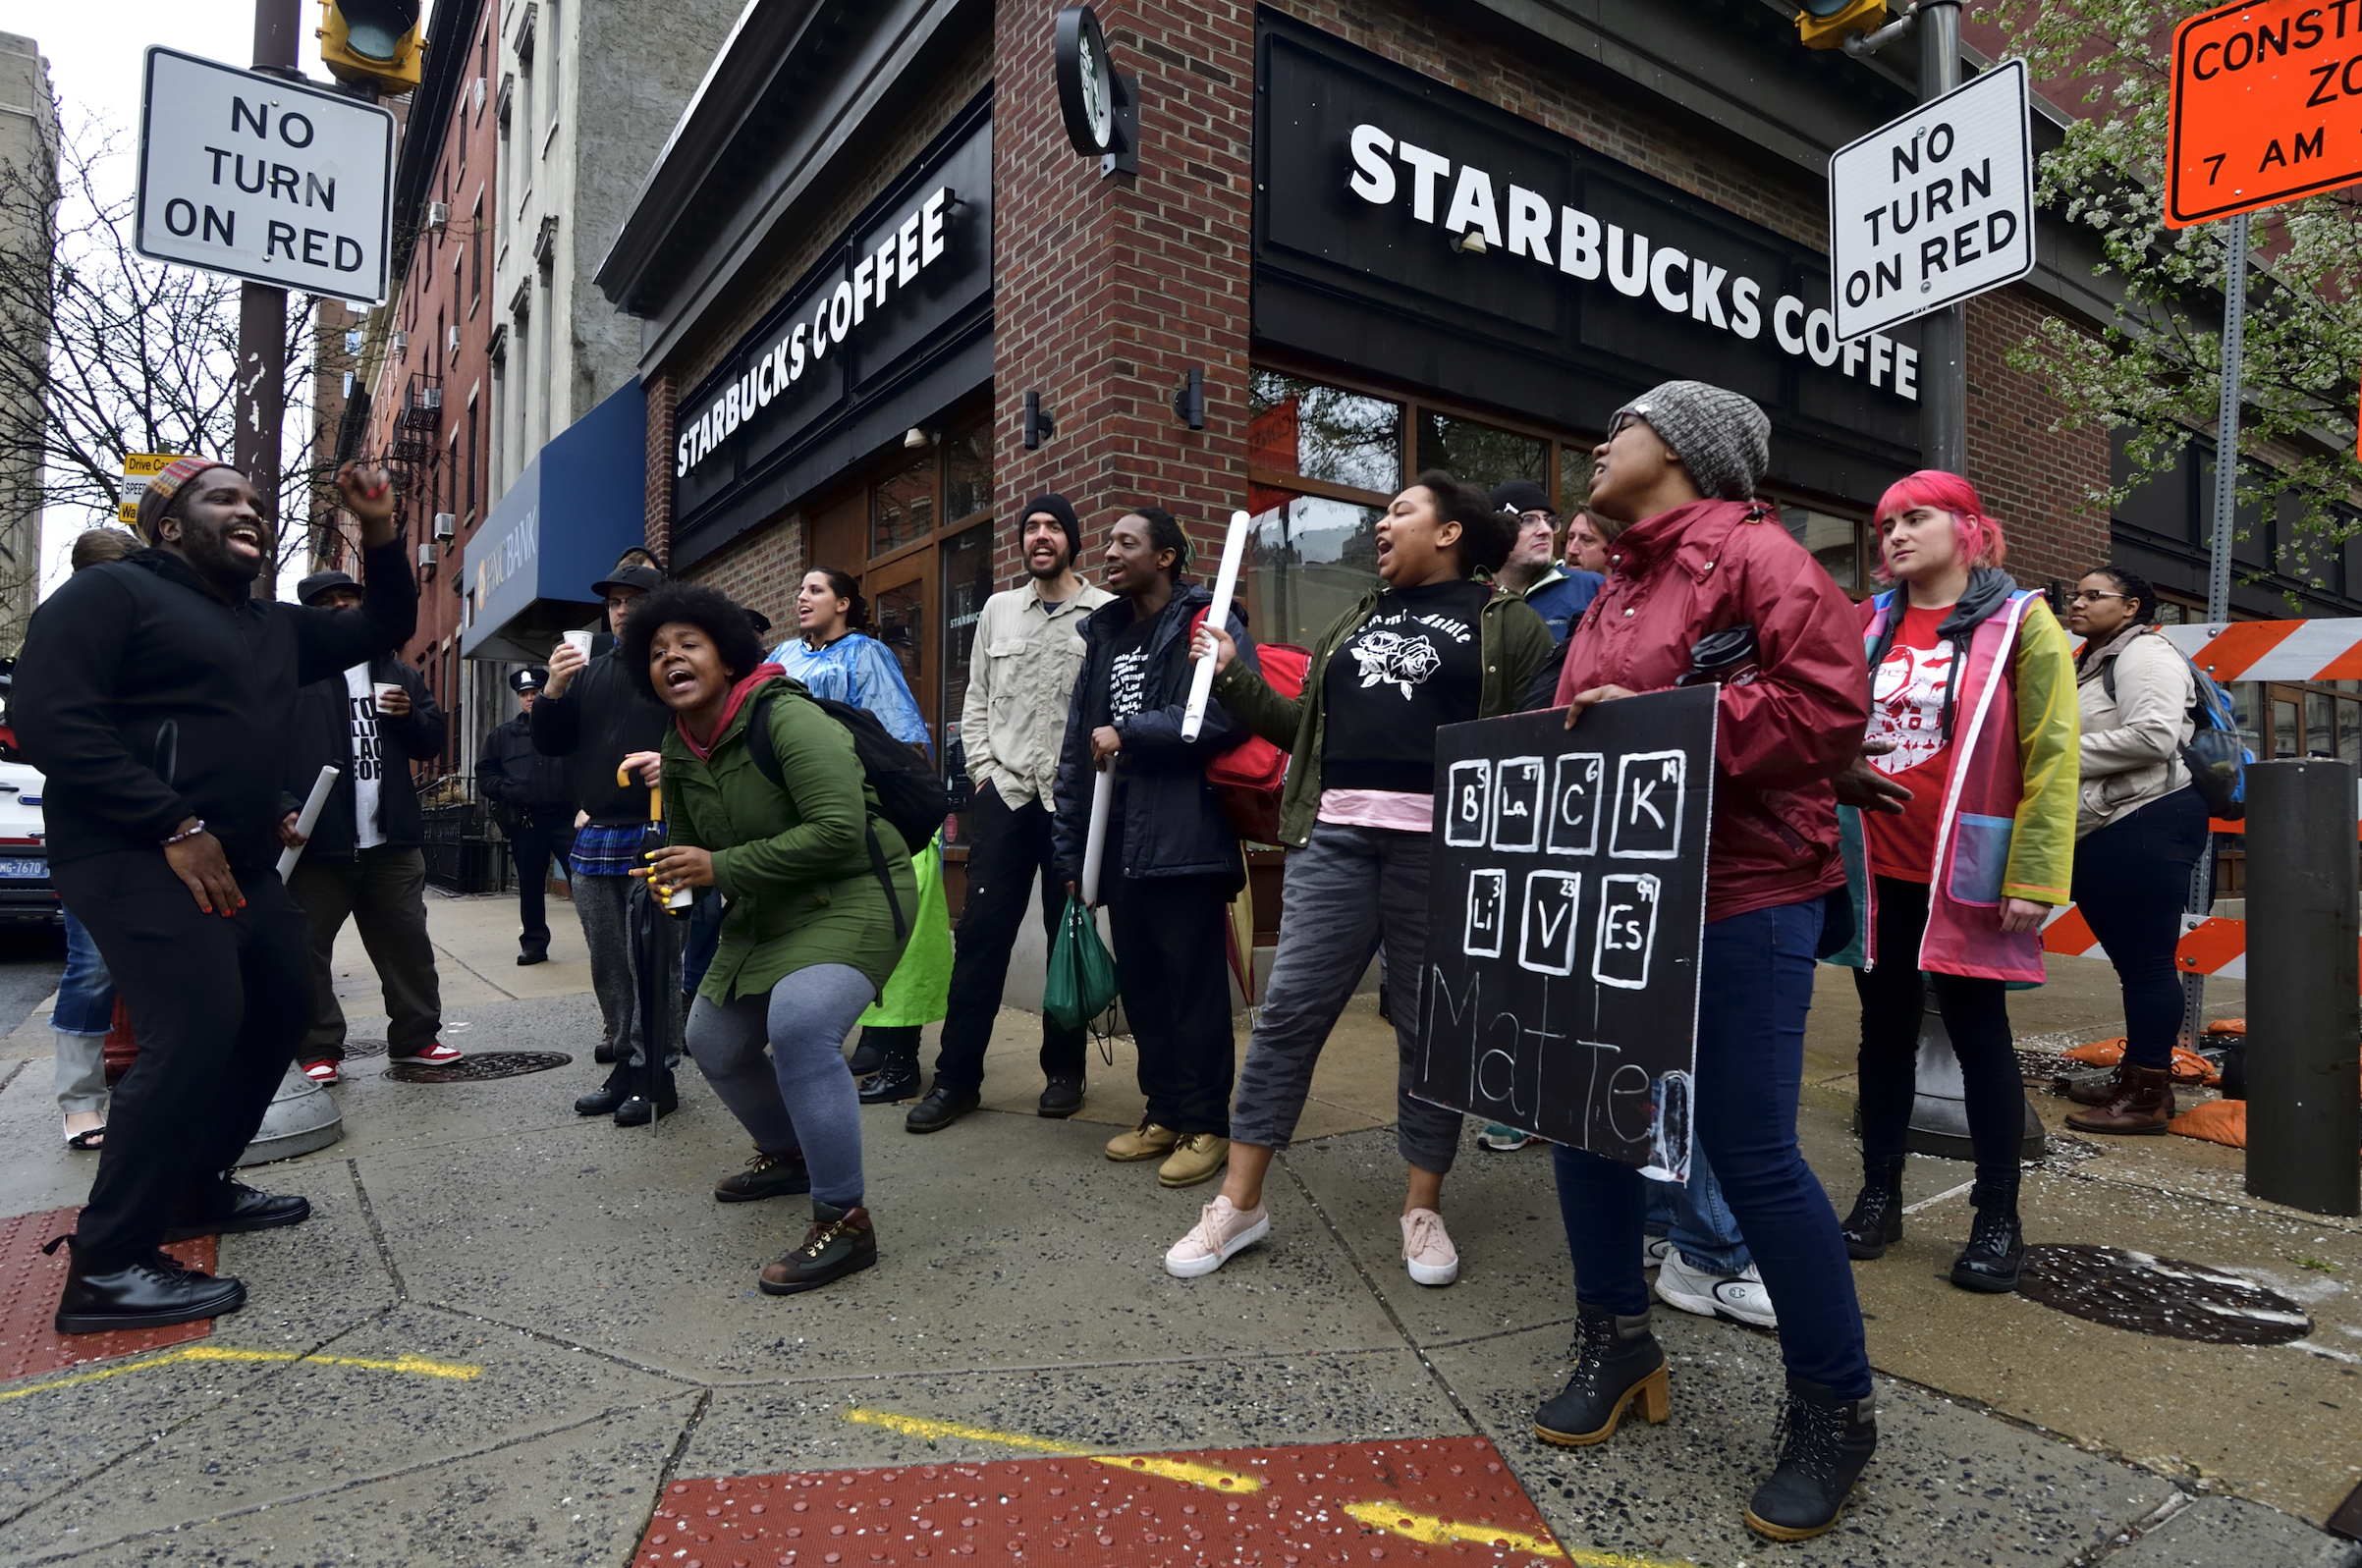 Protesters gather on April 16, 2018, for  protest at the Starbucks location in Center City Philadelphia where days earlier two black men were arrested.